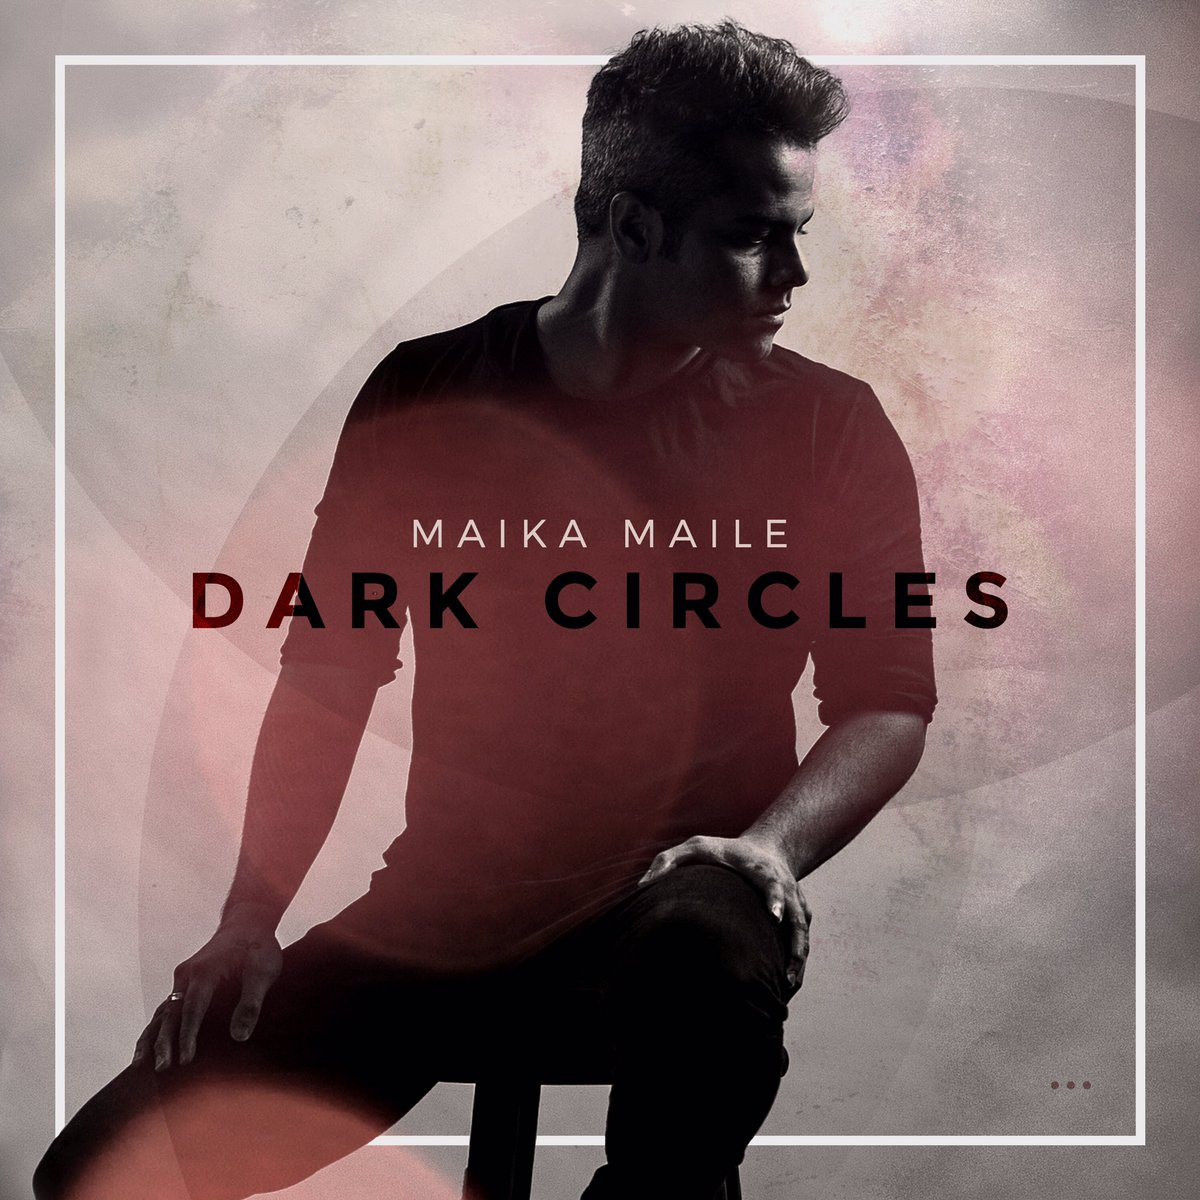 My debut single 'Dark Circles' • 10.18.16 https://t.co/Qzbx5yj85c